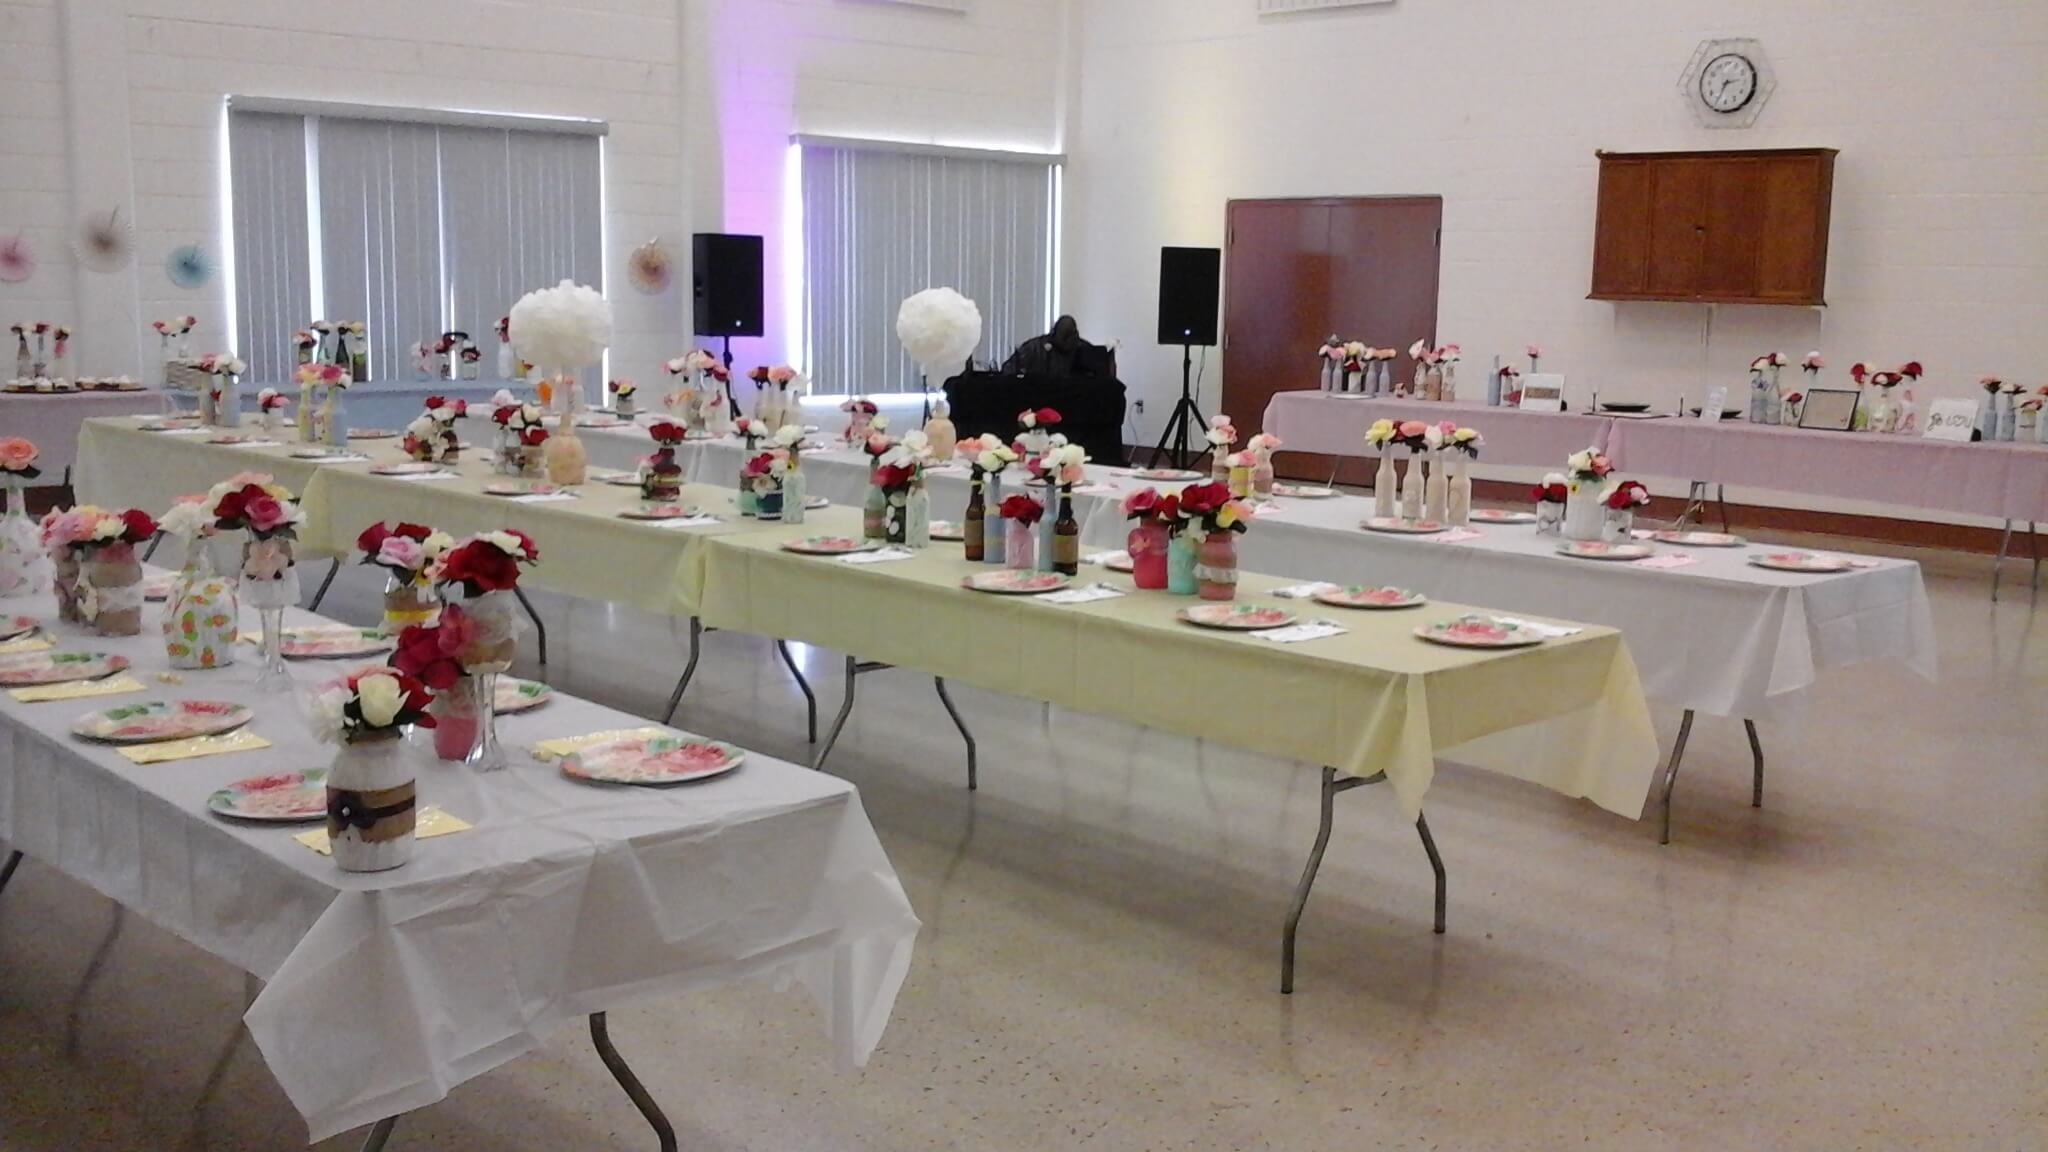 Recreation Center Ready for a Party